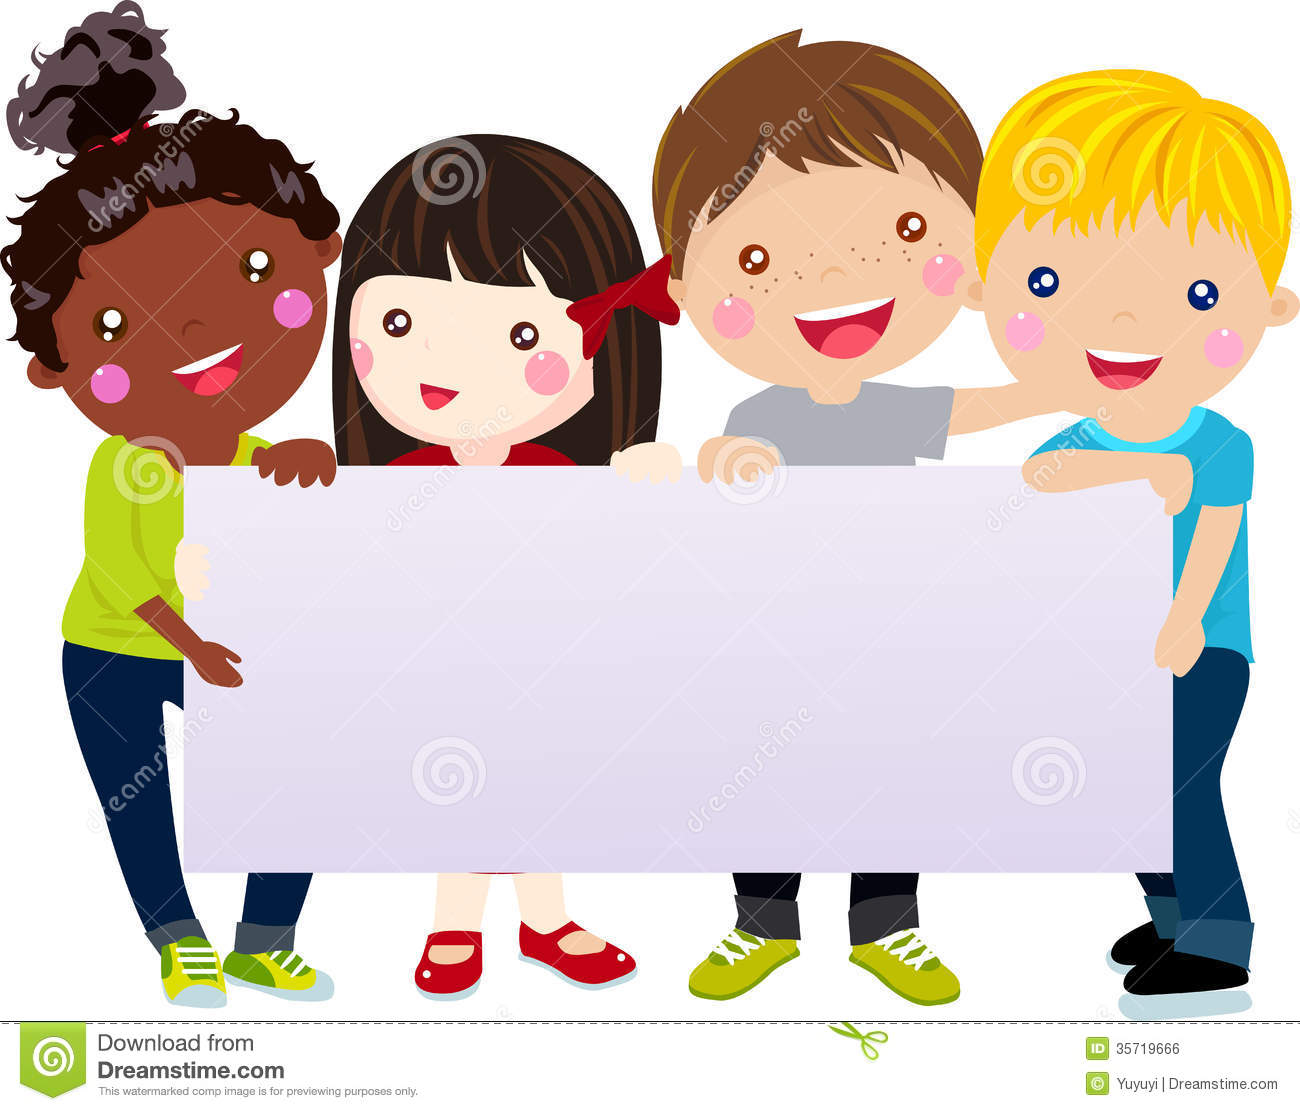 Group Of Kids And Banner Royalty Free Stock Image - Image: 35719616